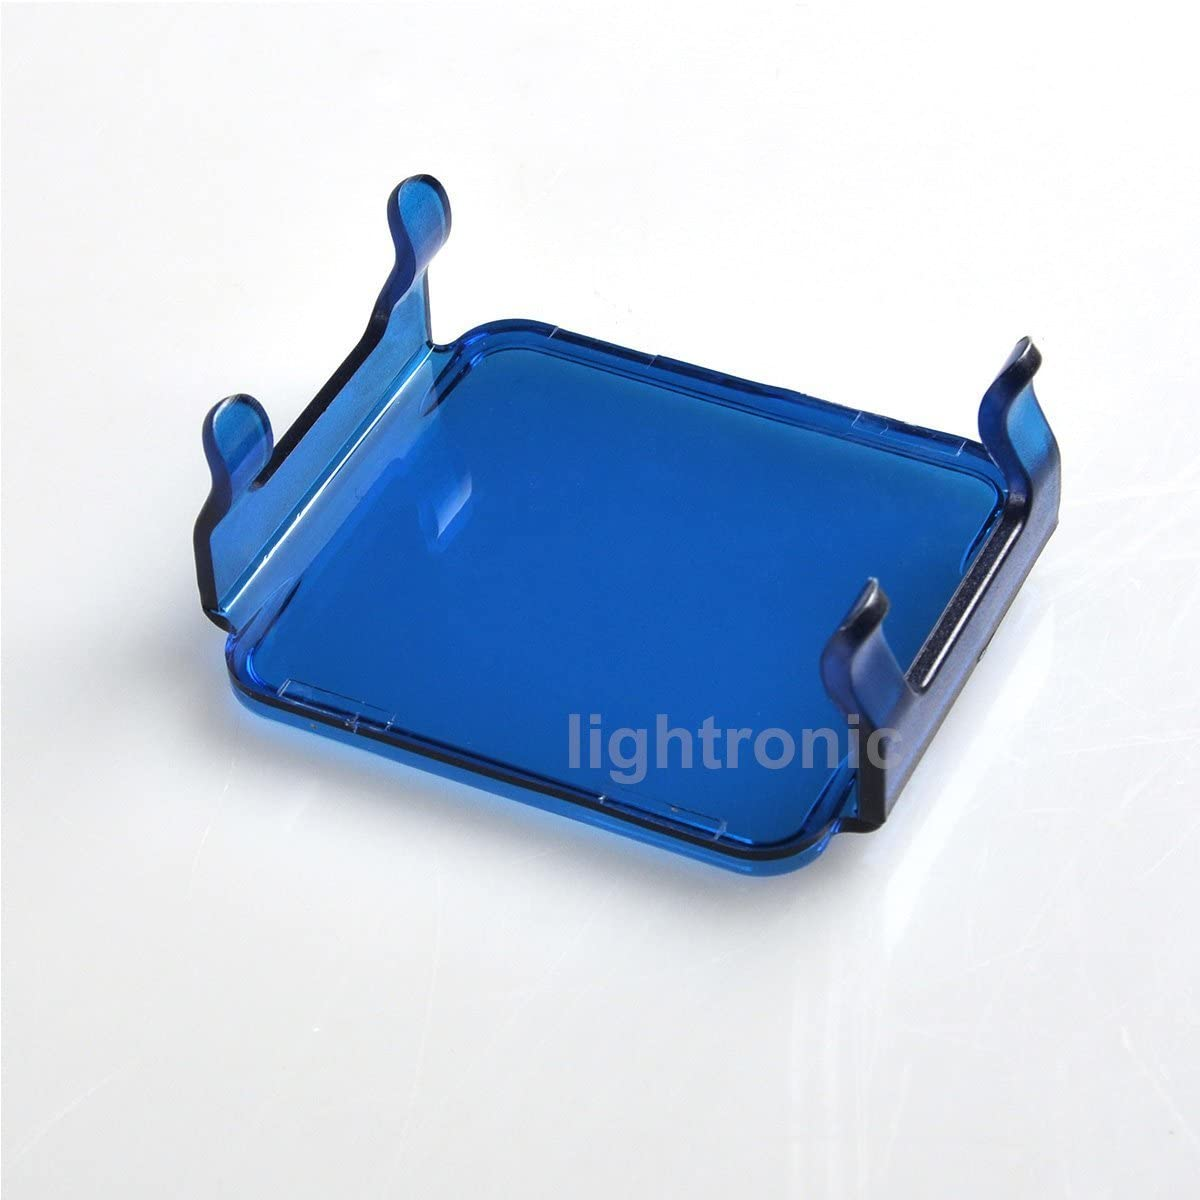 Lightronic 2PCS Blue LED Lens Cover for Work Driving Light Off Road 3x3 18W 16W Cube Pods Blue